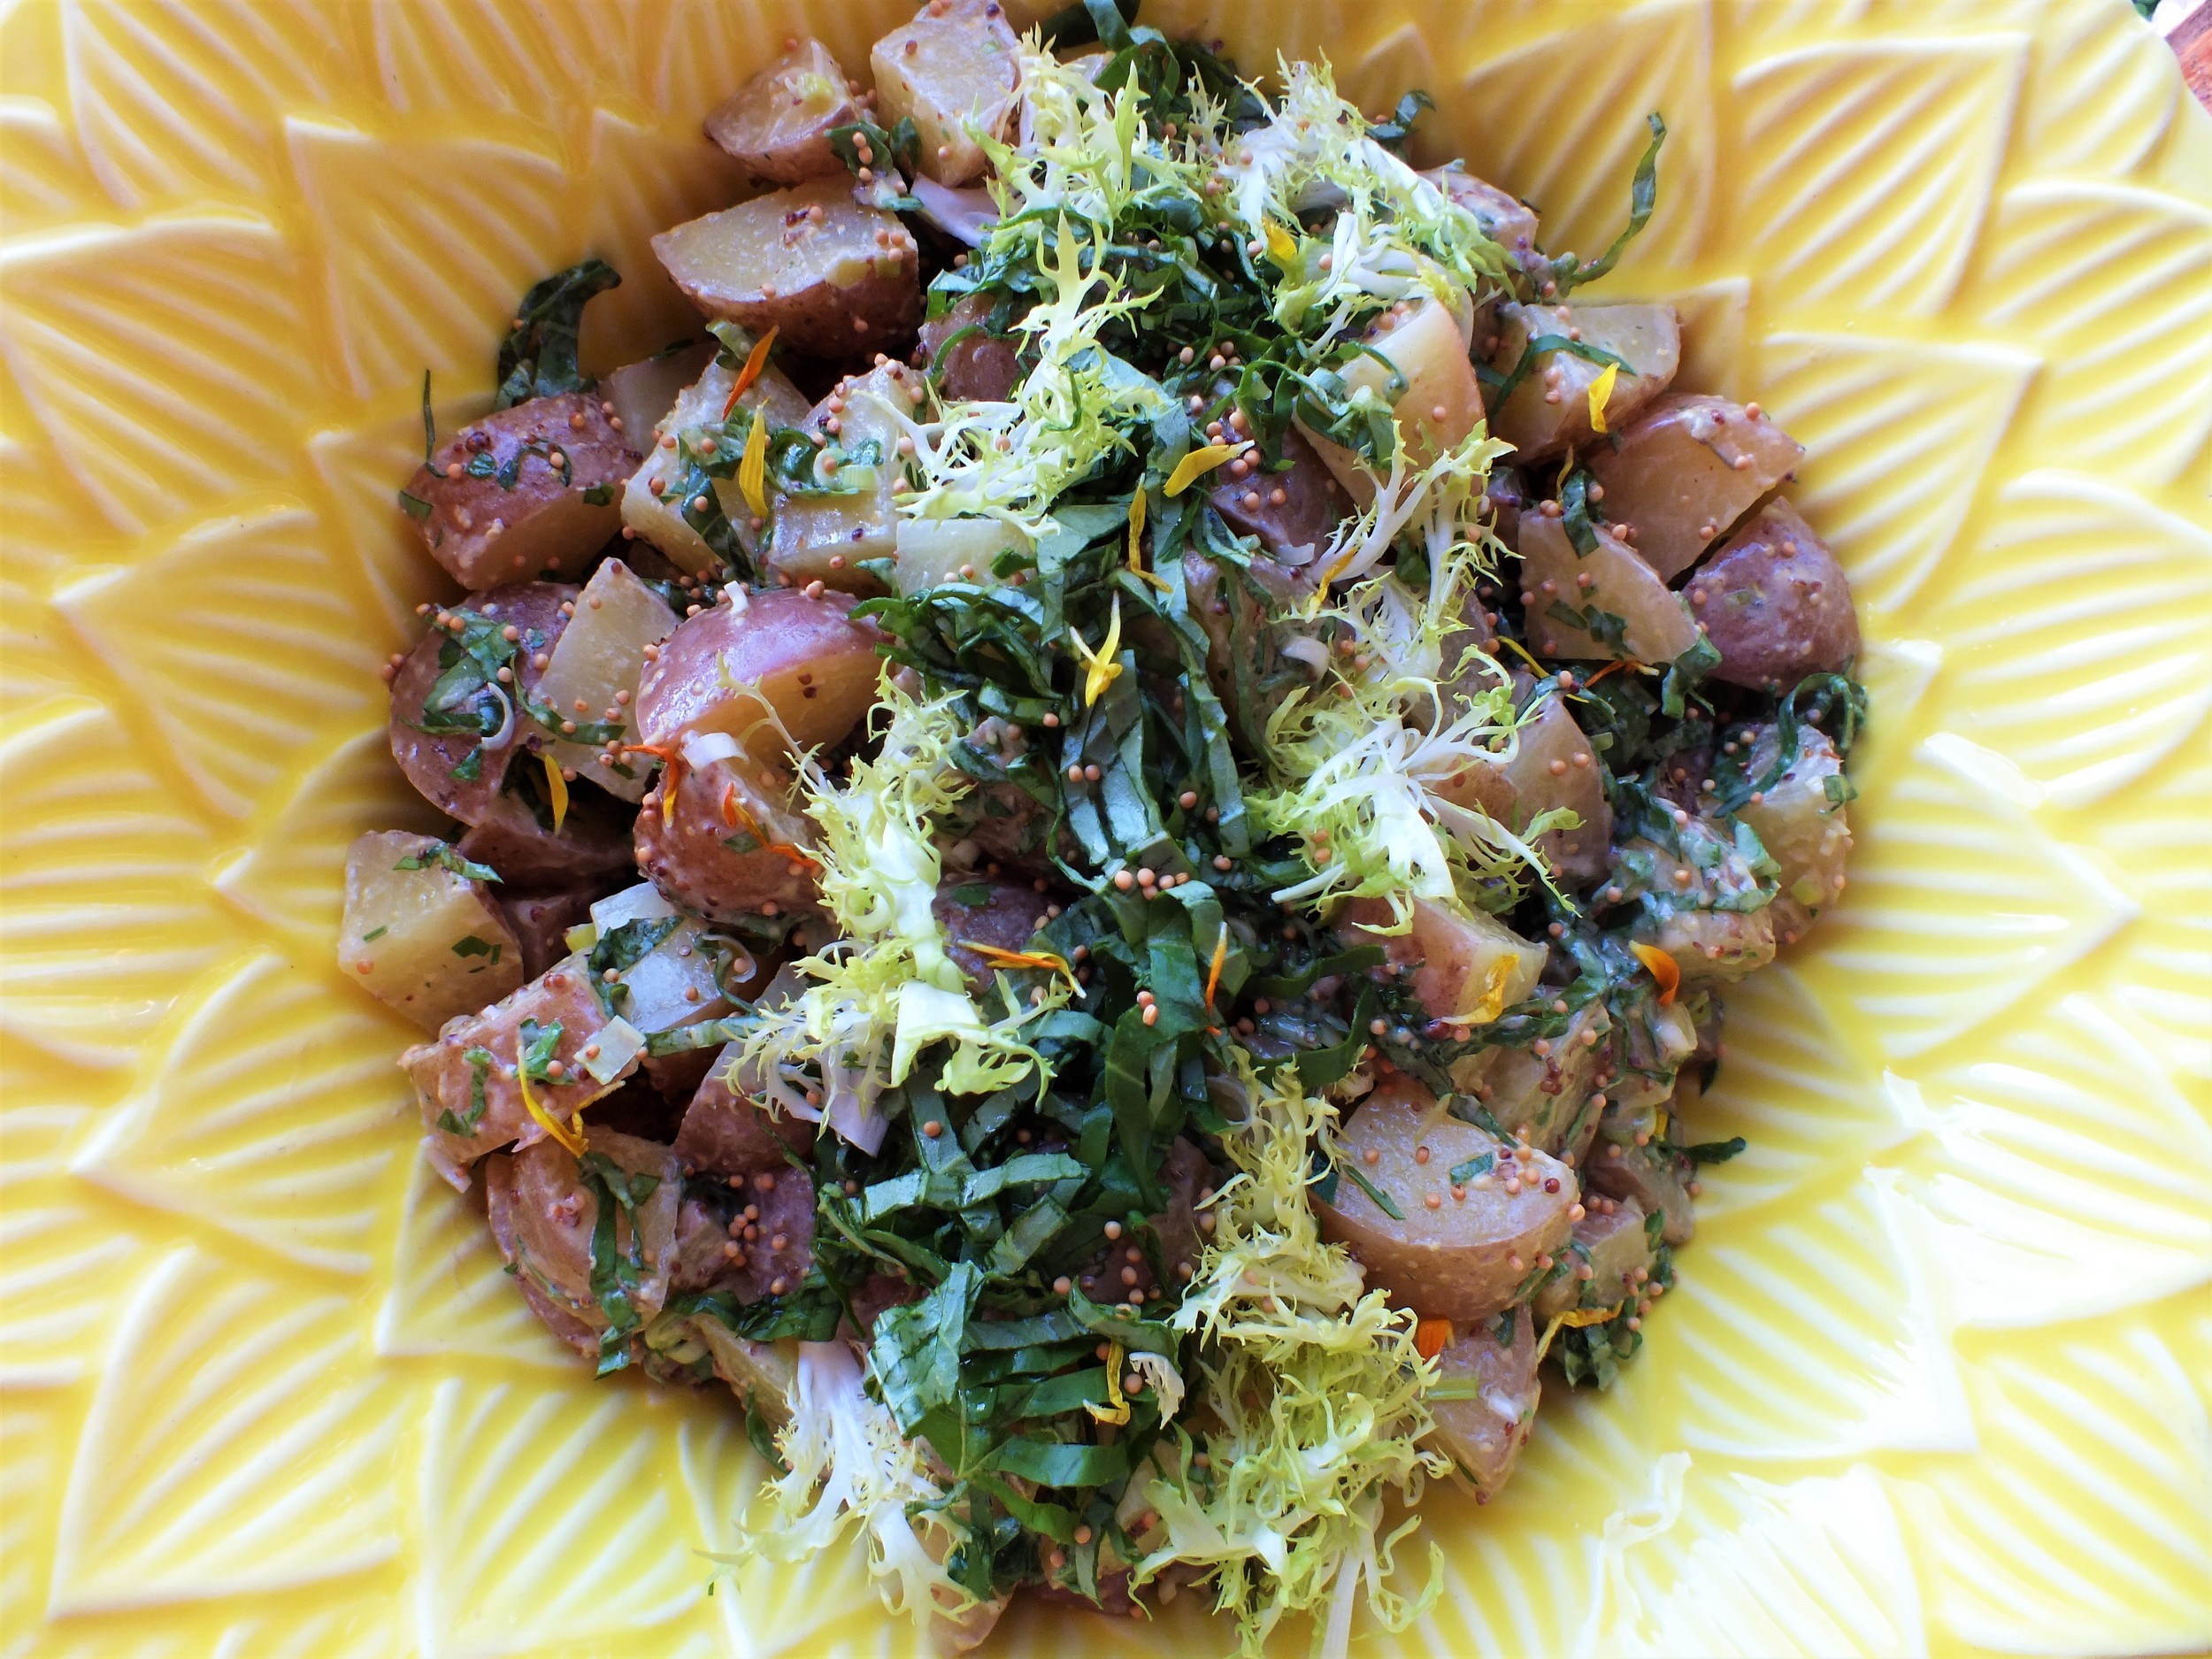 Red Potato Salad with Creamy Mustard Seed Dressing, Herbs & Frisee